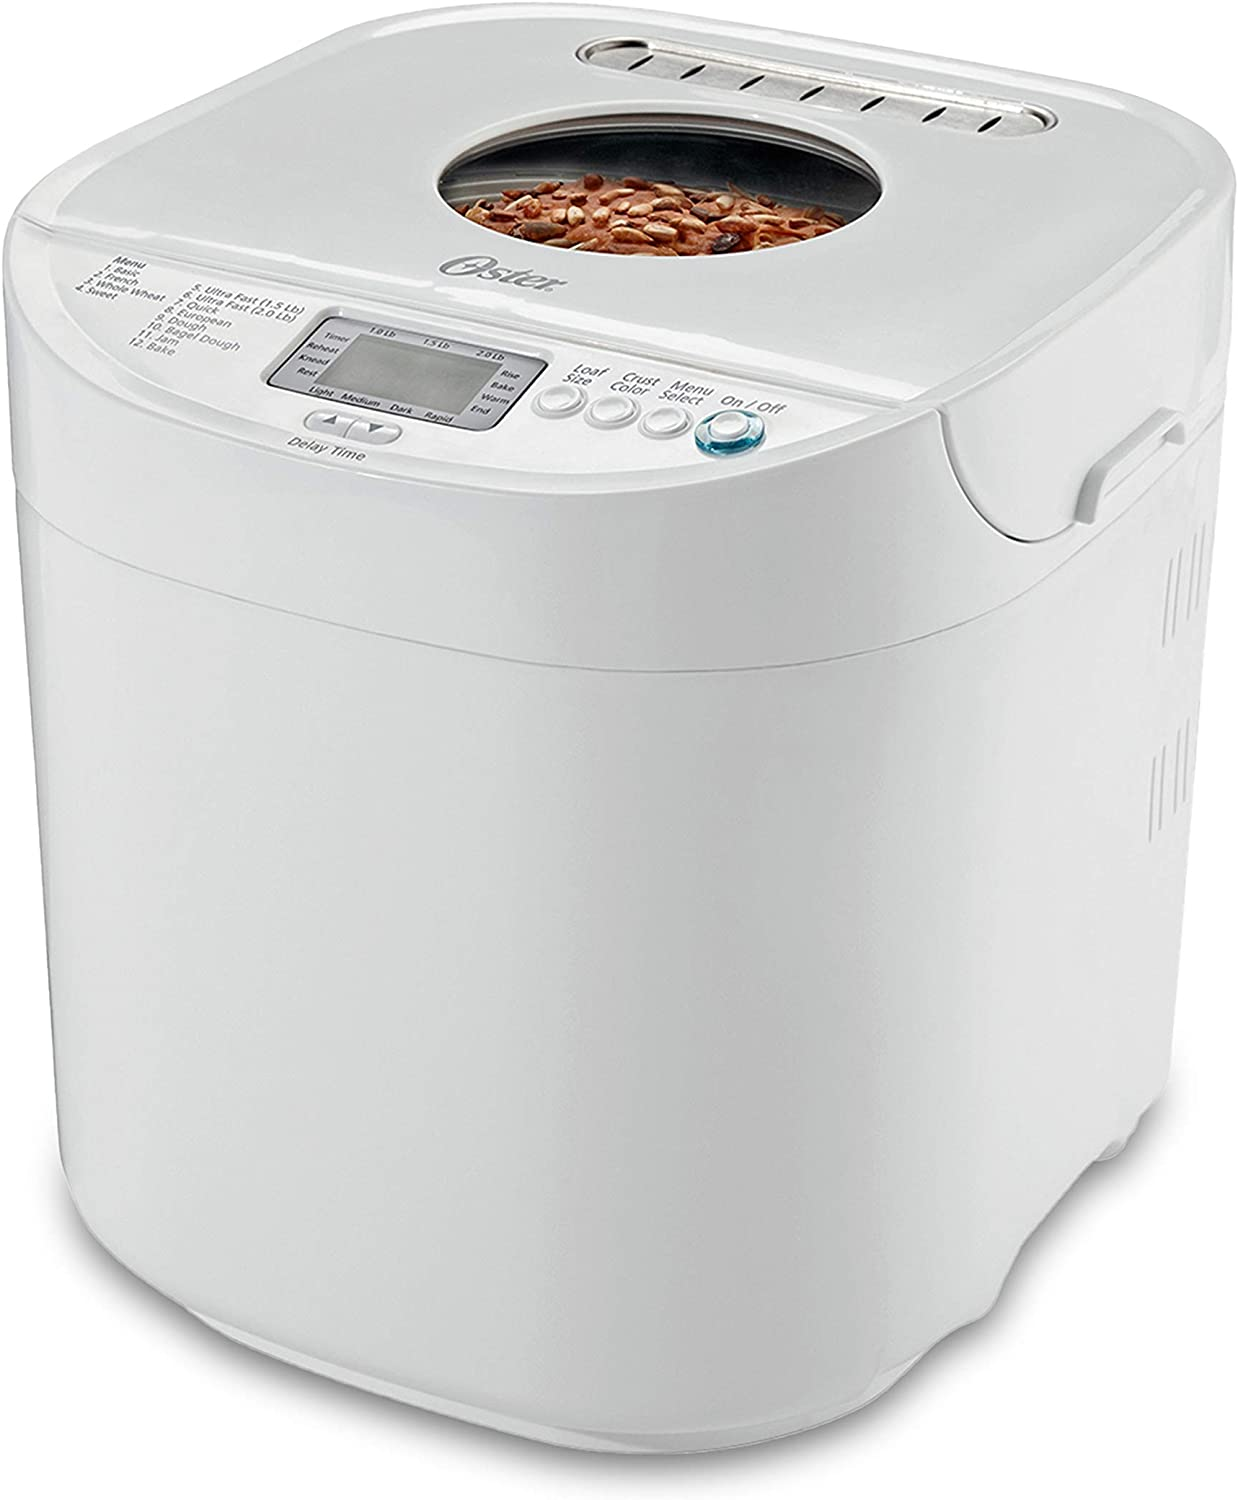 Oster Expressbake Breadmaker OFFicial store 2-lb. Loaf White Sales Capacity lb I 2